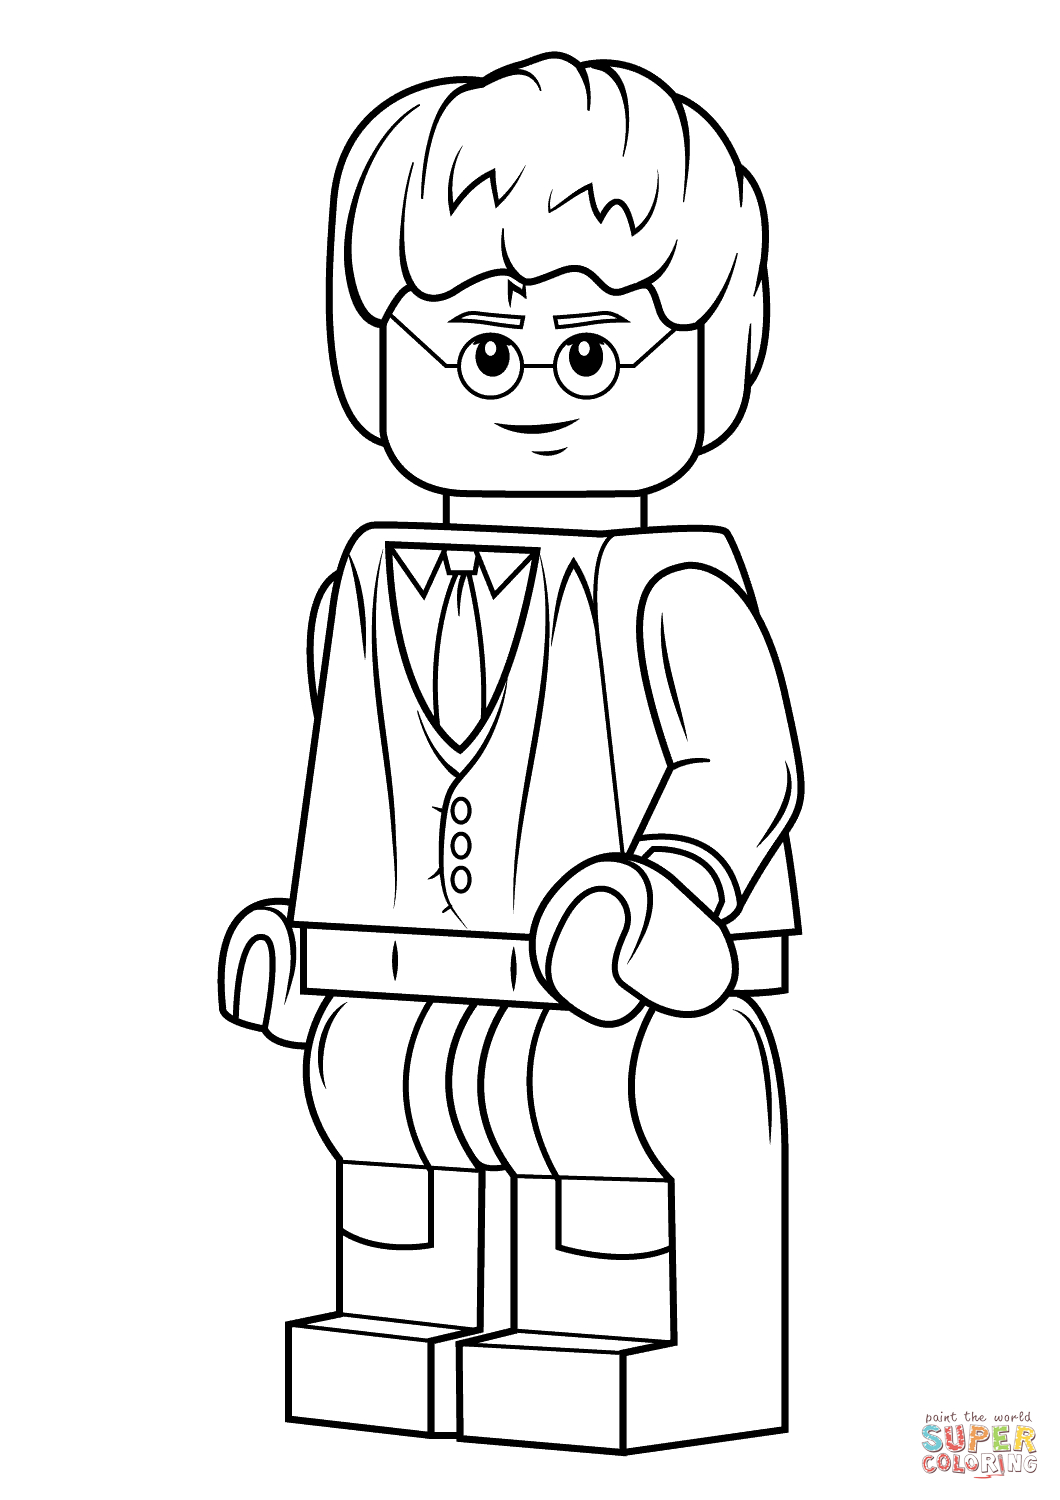 Lego Harry Potter Coloring Page | Free Printable Coloring Pages - Free Printable Harry Potter Coloring Pages